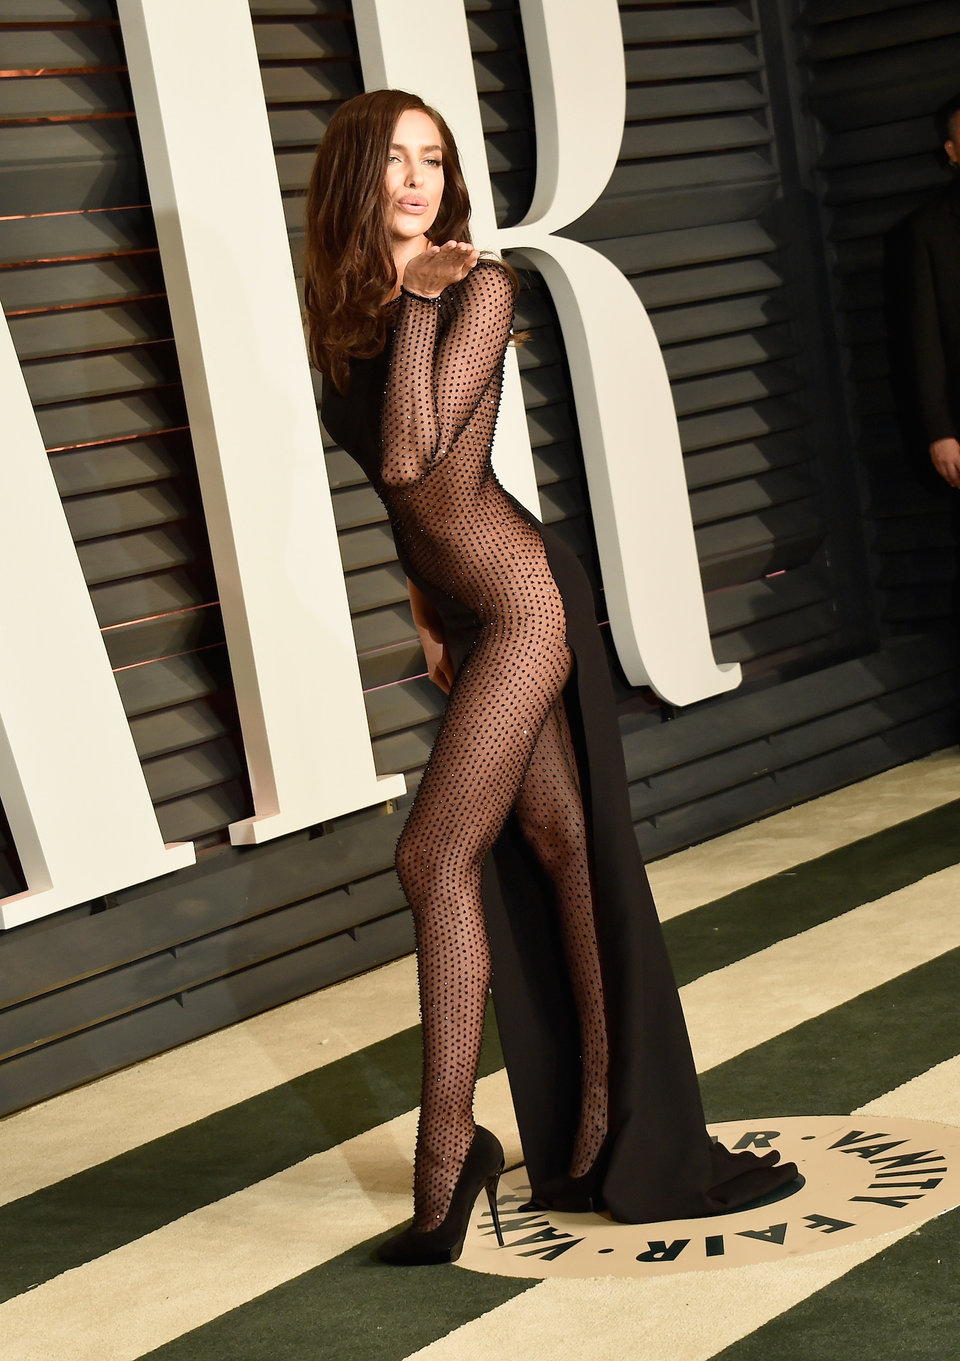 model irina shayk attended the same vanity fair event in an even more daring sheer dress